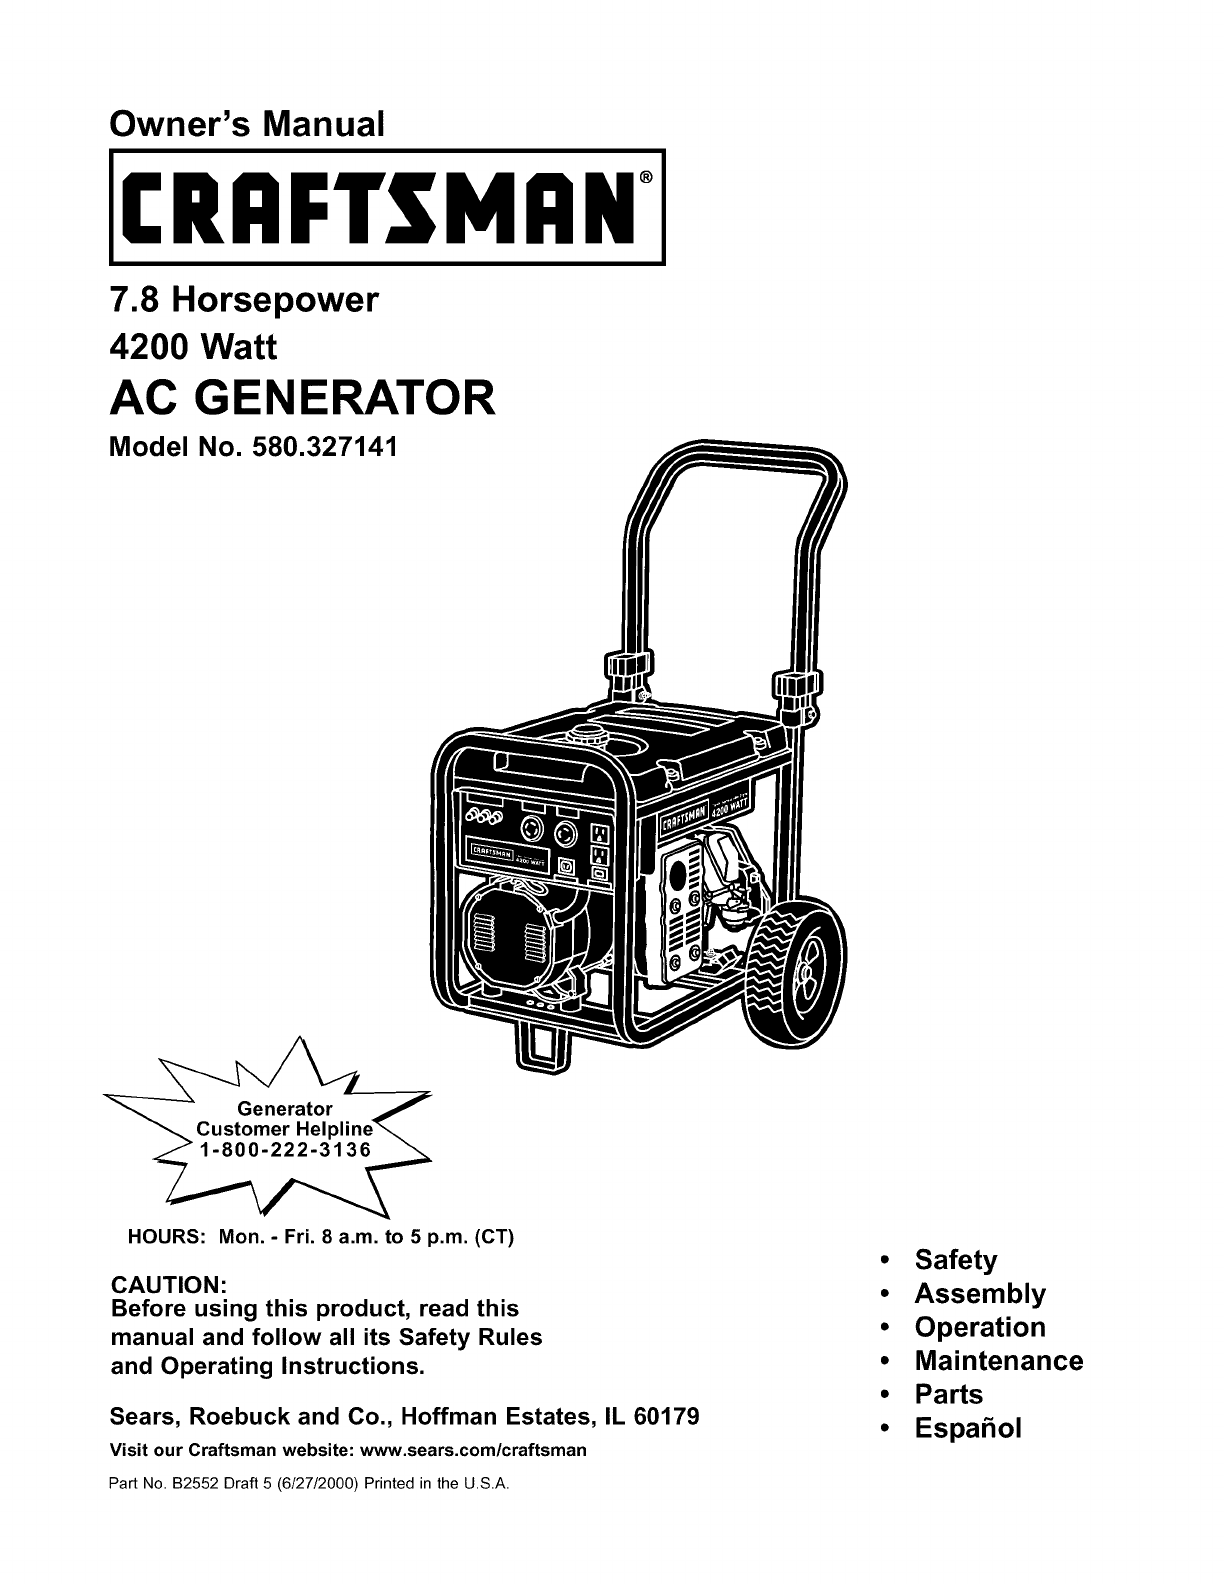 Craftsman Portable Generator 580.327141 User Guide